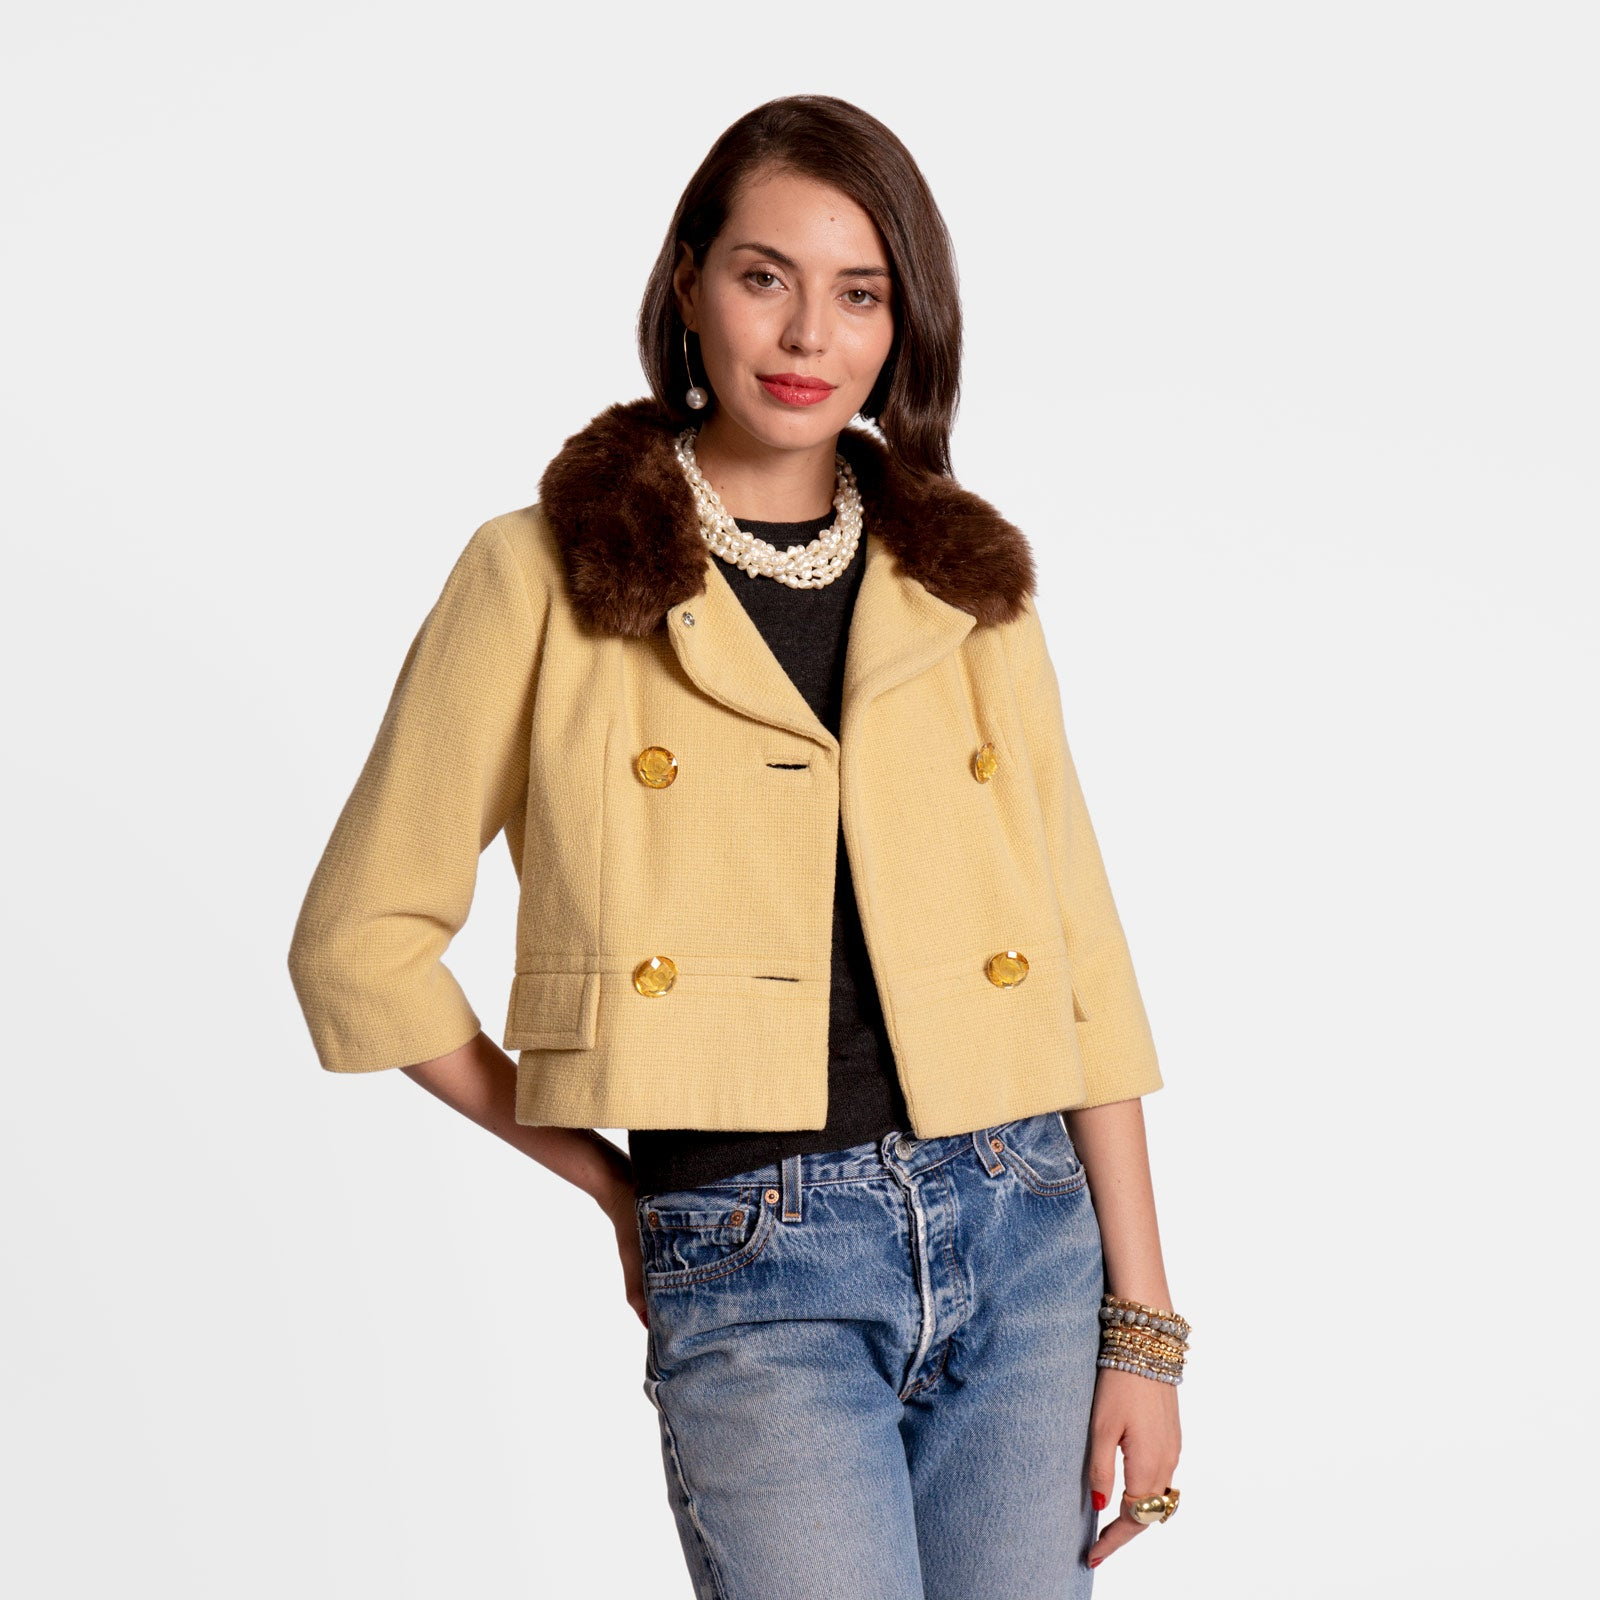 Gigi Lady Jacket Faux Fur Yellow - Frances Valentine